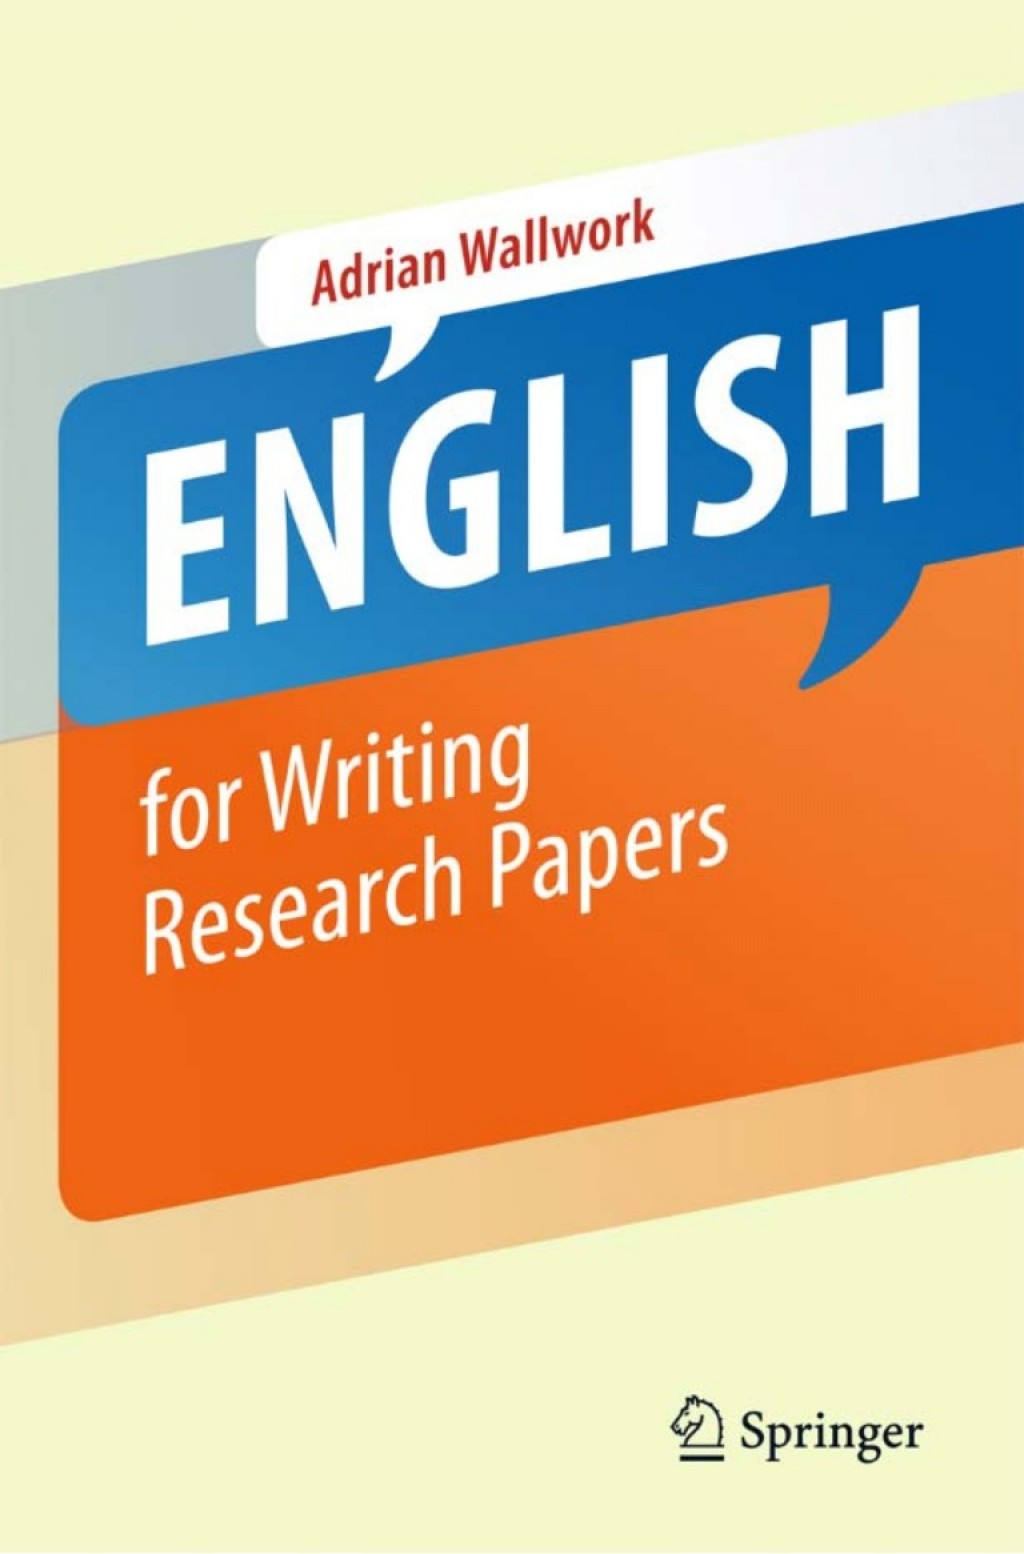 016 Research Paper Writing Papers Englishforwritingresearchpapers Conversion Gate01 Thumbnail Unique A Complete Guide Pdf Download James D Lester Large